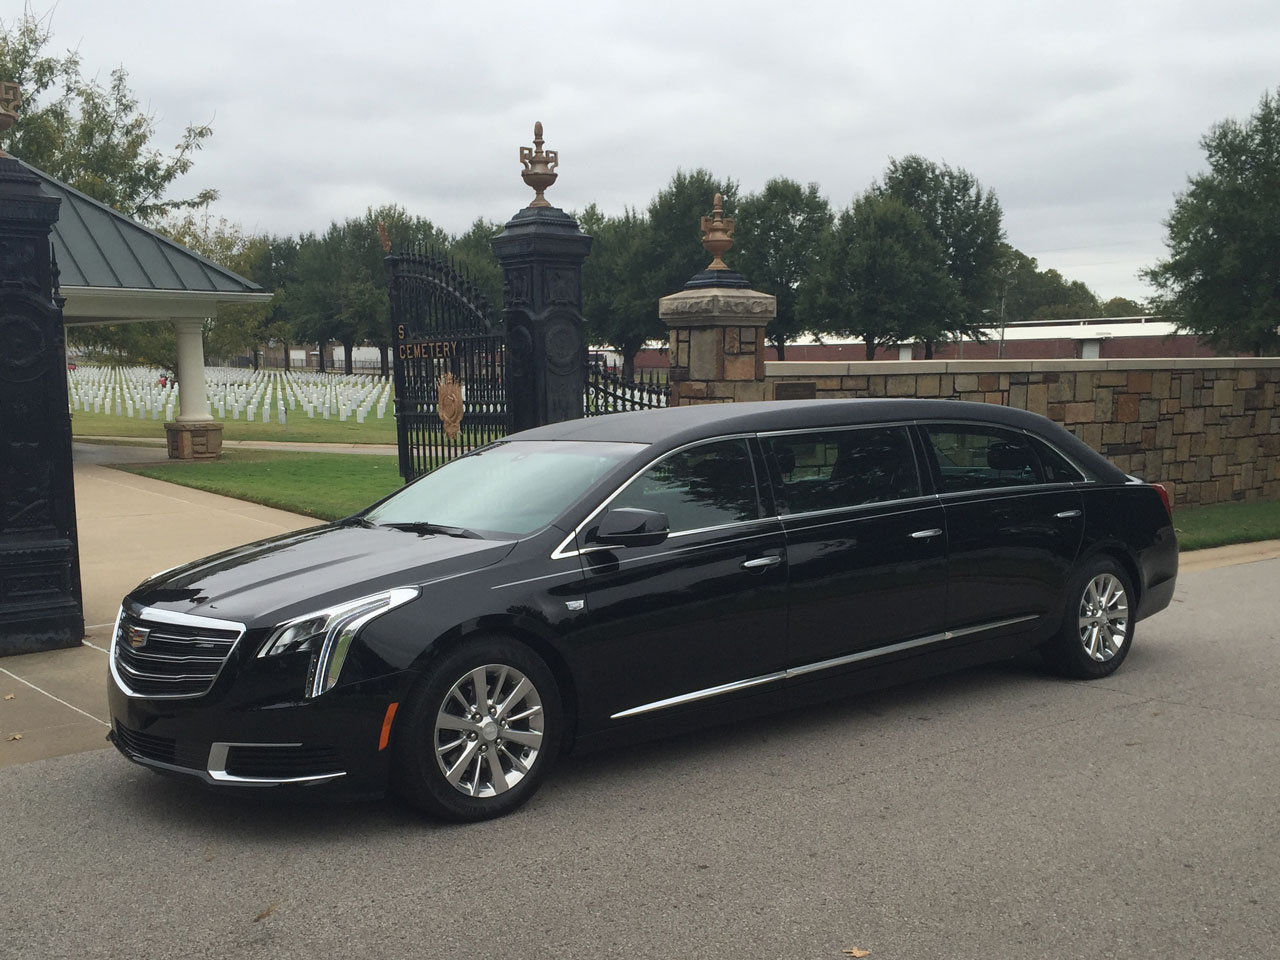 2019 Armbruster Stageway Cadillac L6 52 Stretch Limousine 11